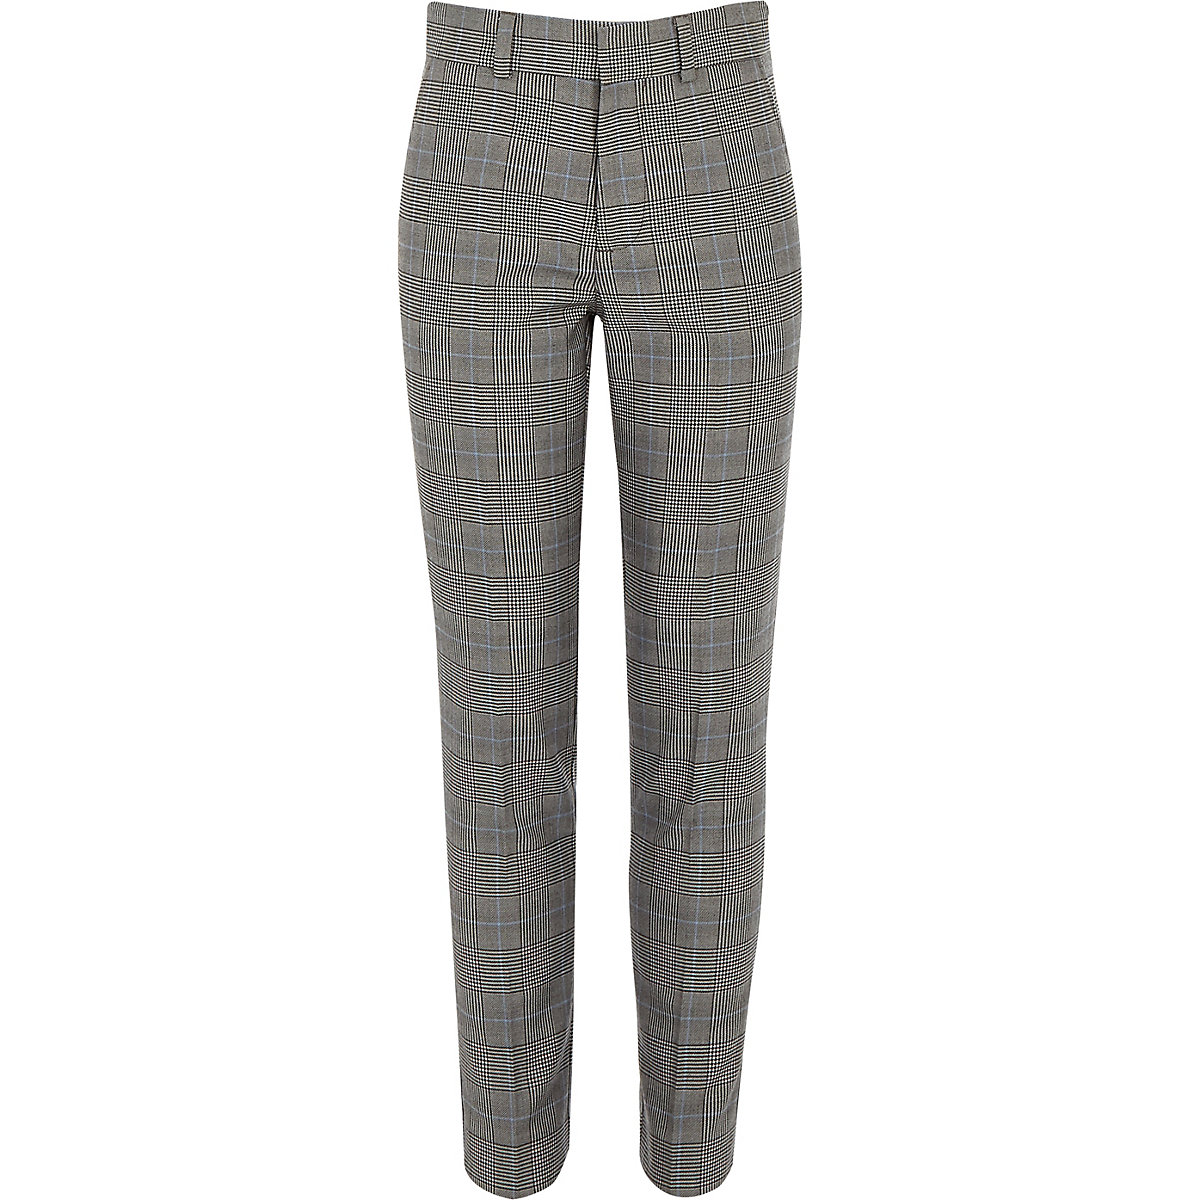 Boys grey check suit pants